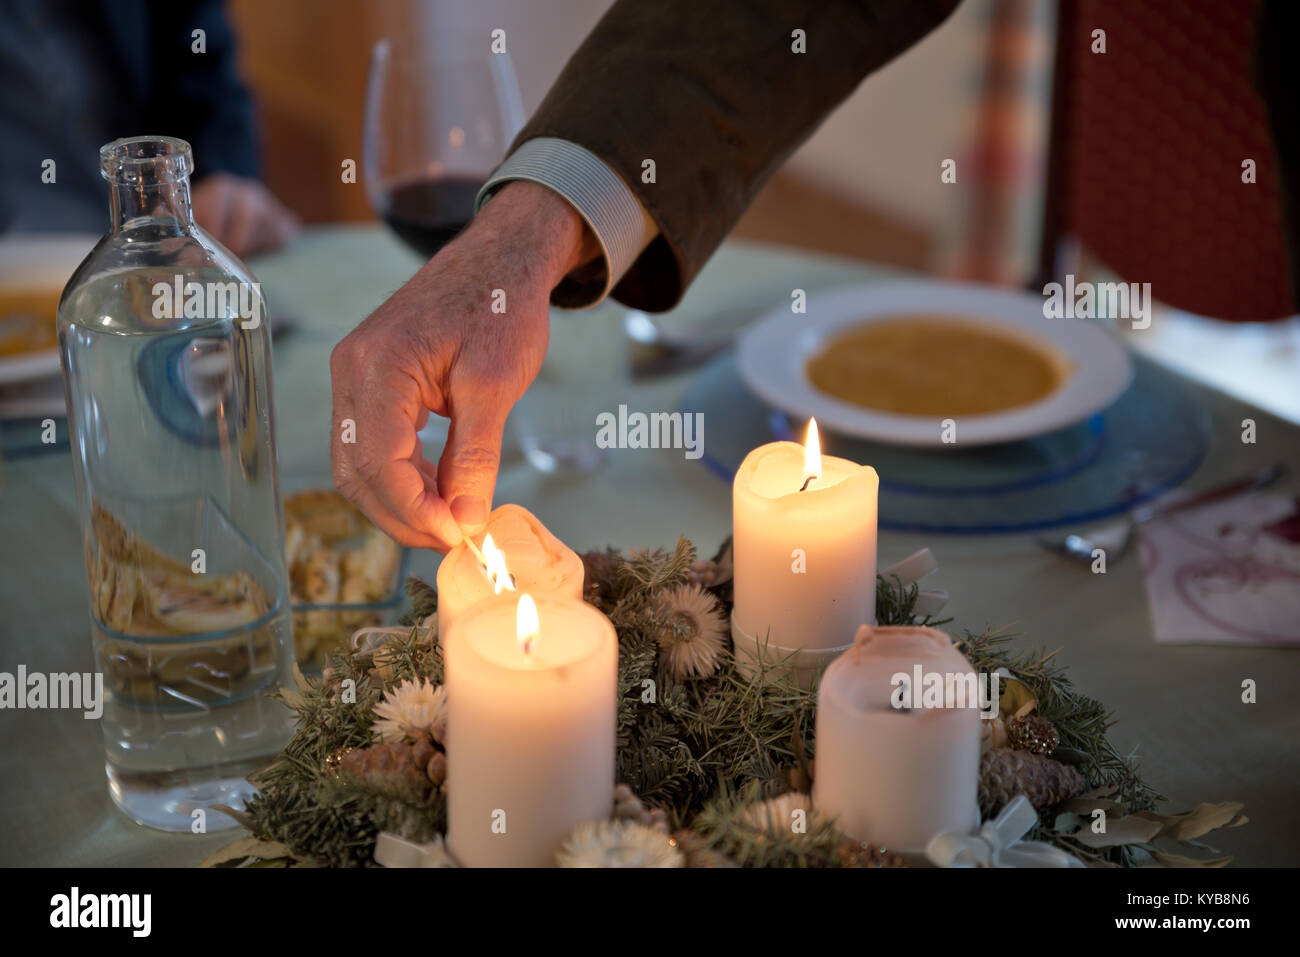 Person lighting the candles on a richly decorated Advent wreath with a match on a solemnly laid table, ready for - Stock Image